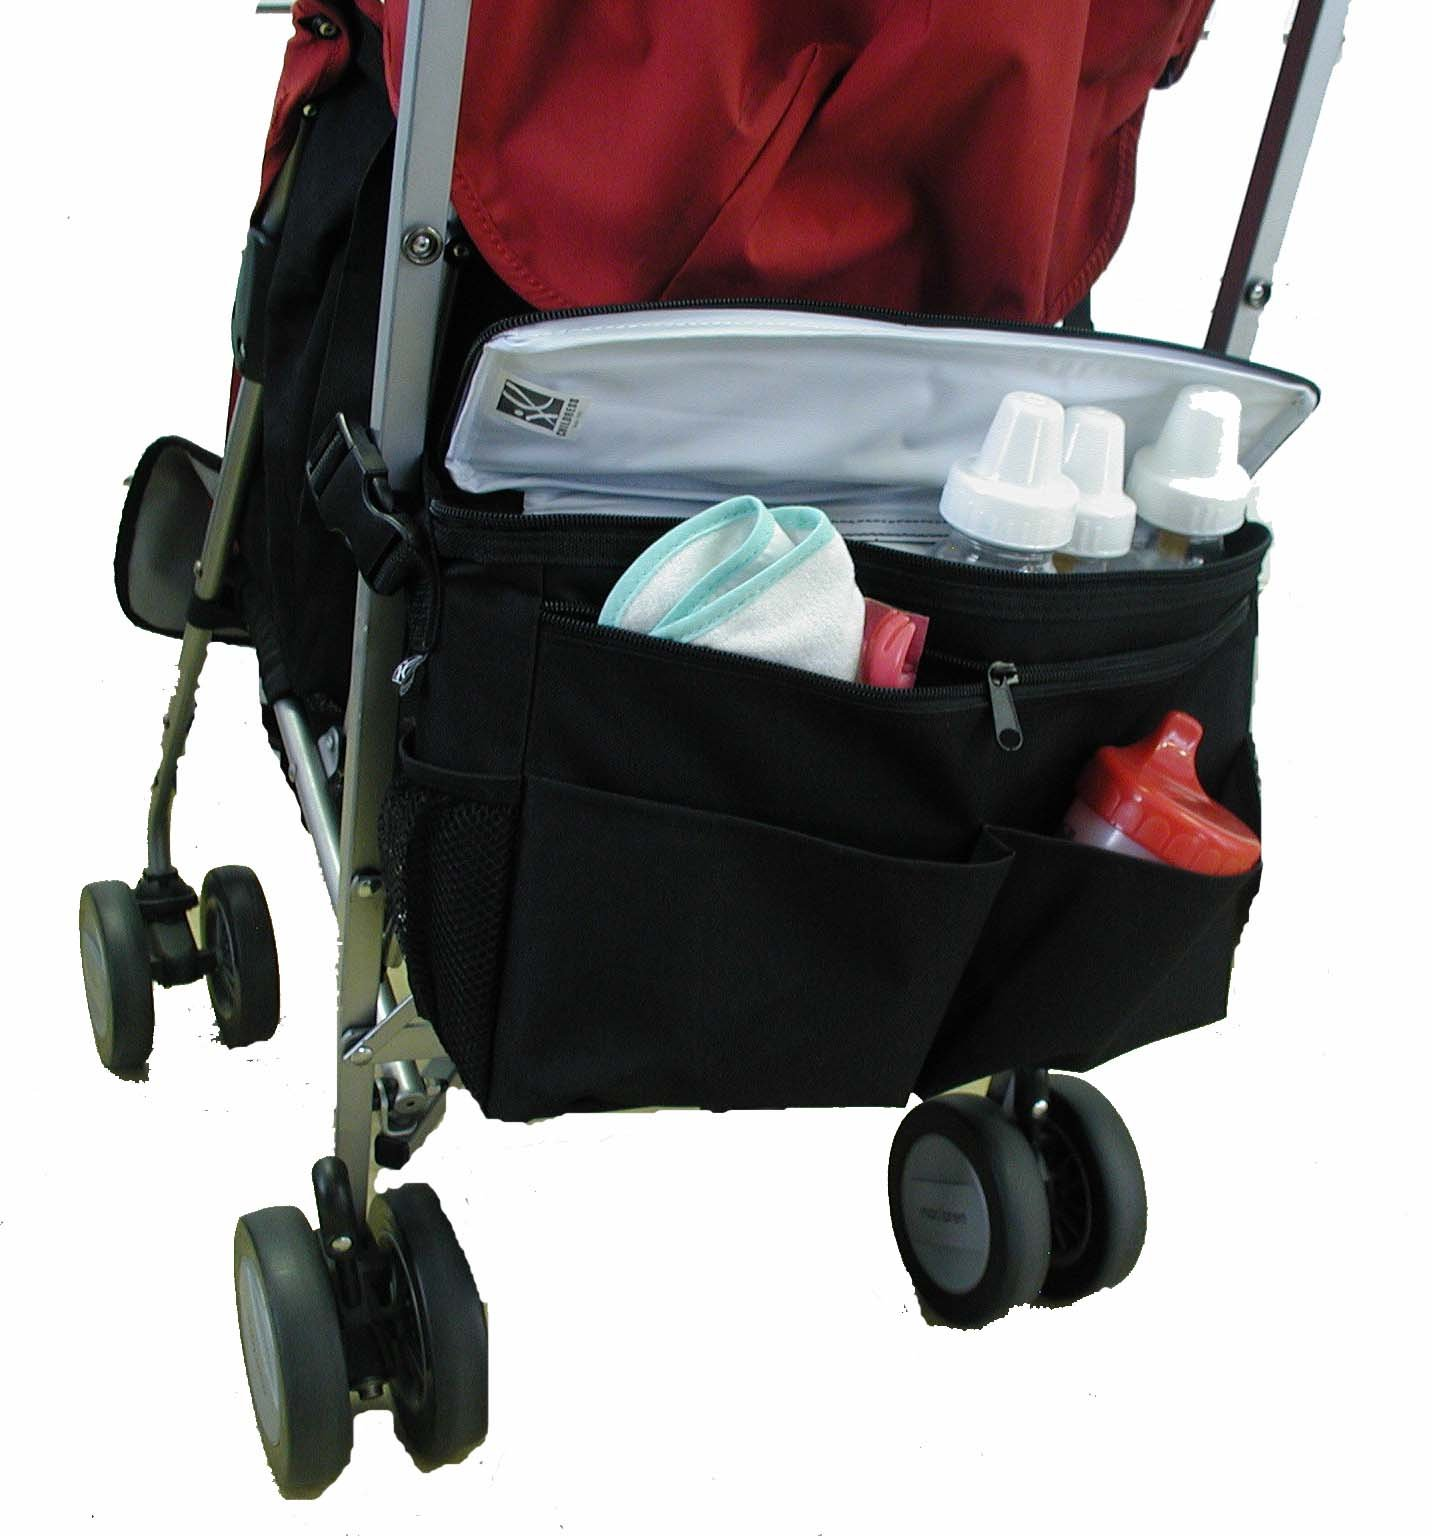 J.L. Childress Cool 'N Cargo Stroller Cooler, Black